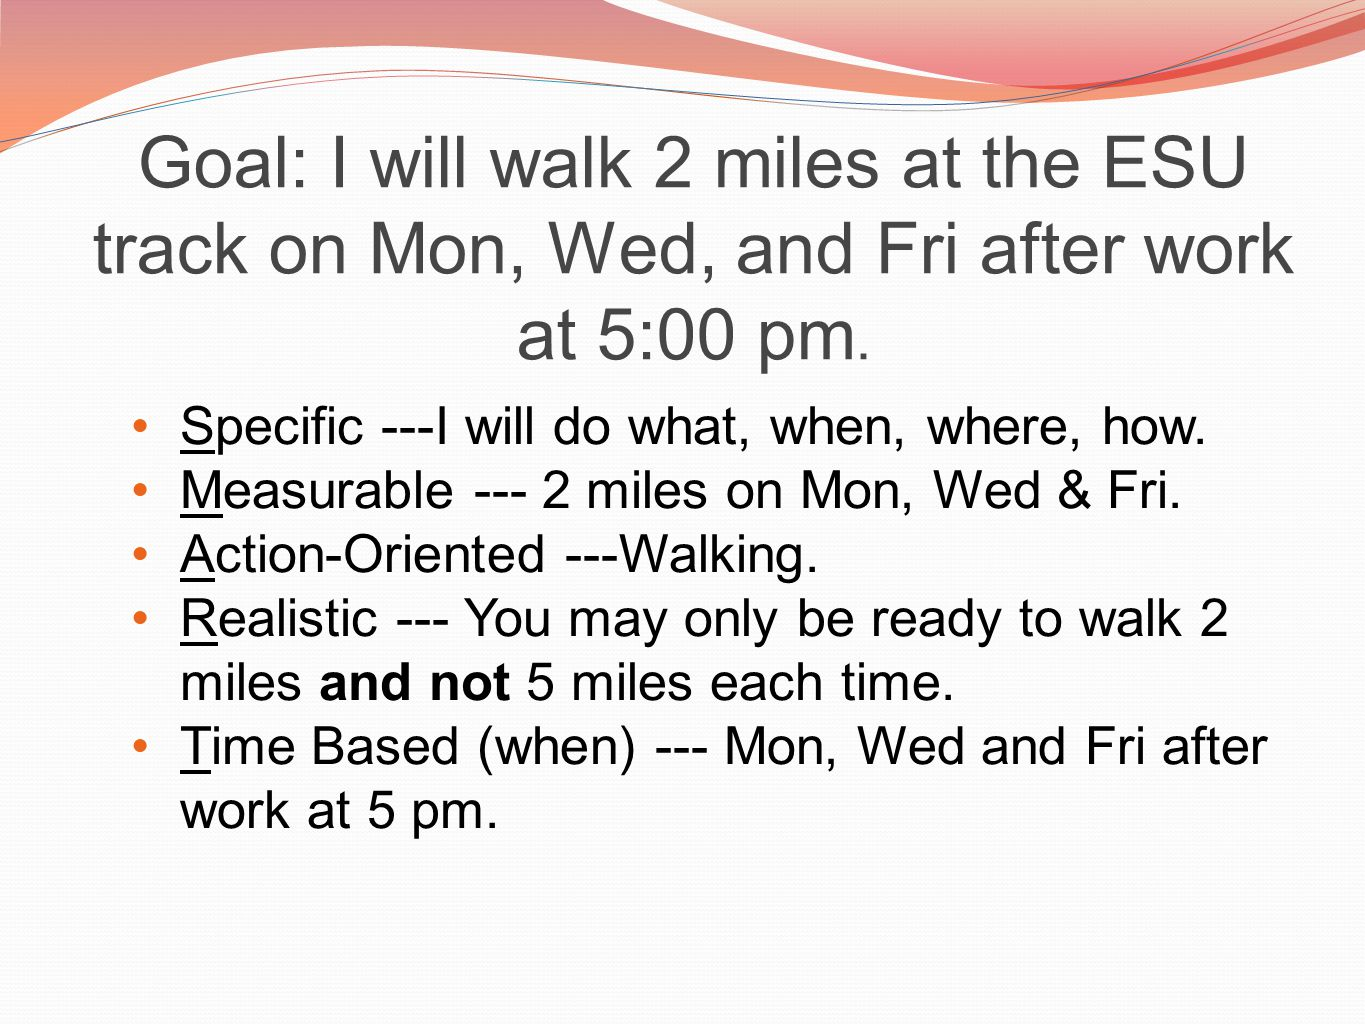 Goal: I will walk 2 miles at the ESU track on Mon, Wed, and Fri after work at 5:00 pm.